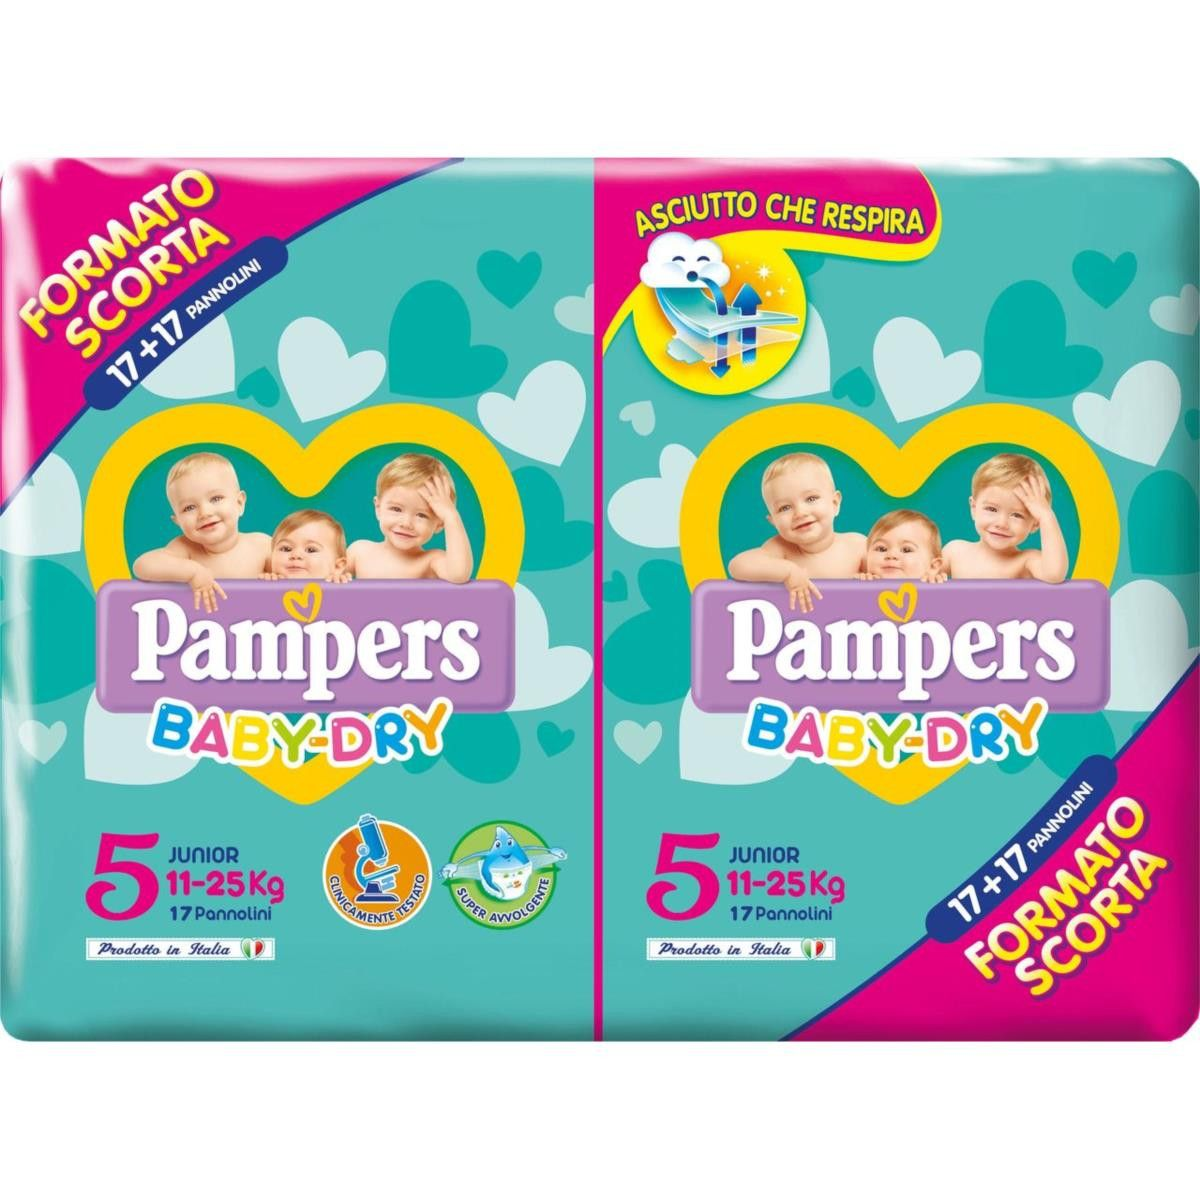 Pampers Baby Dry Duo Junior 34 Pannolini